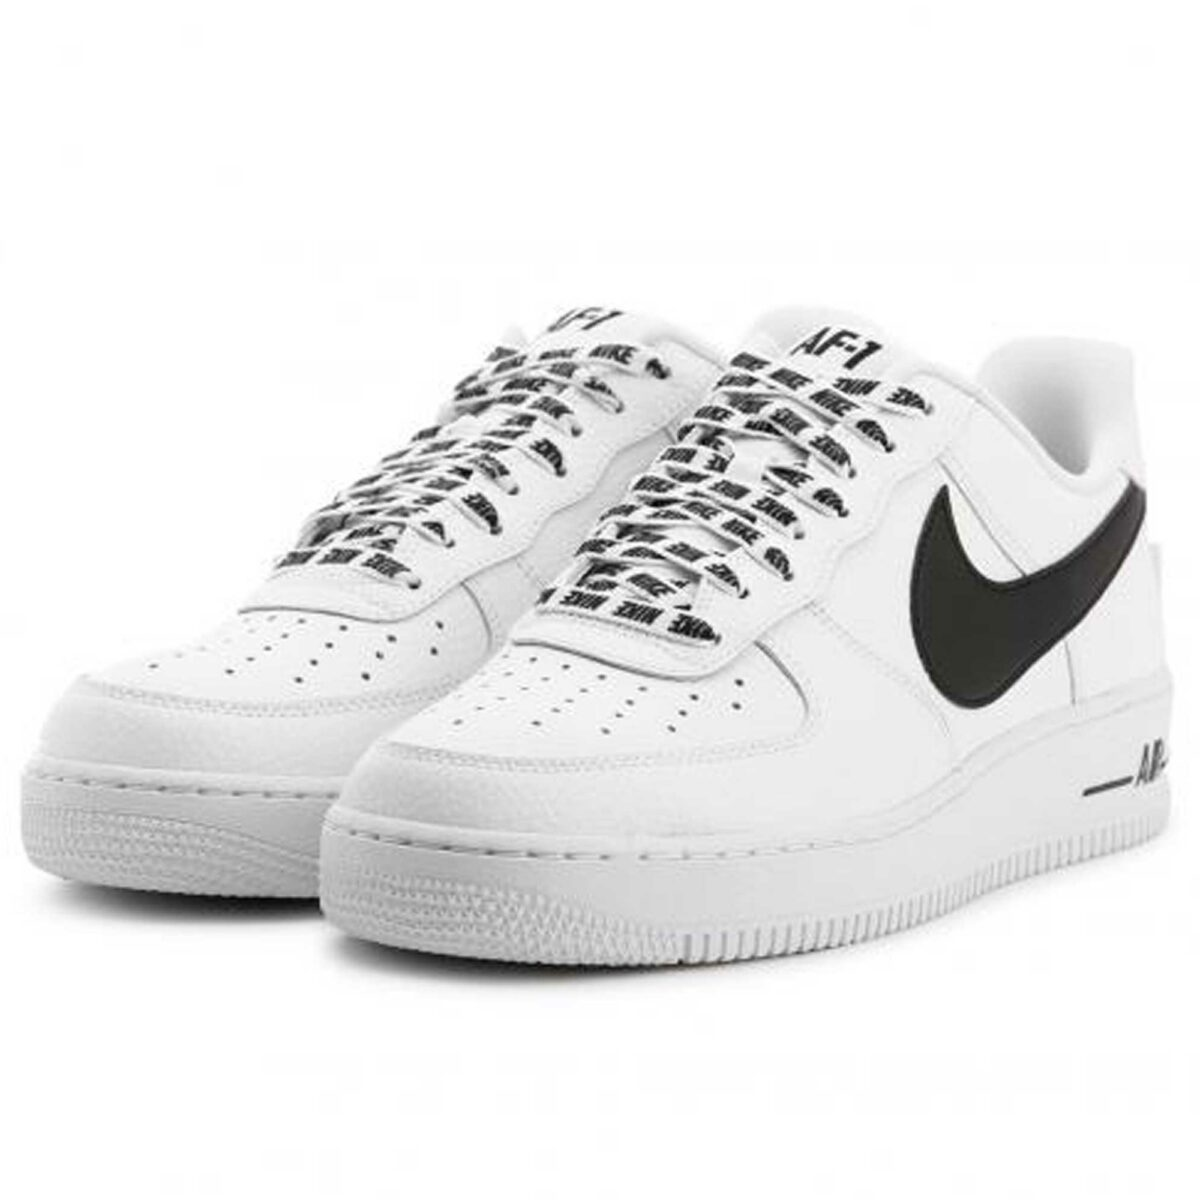 nike air force 1 '07 lv8 white black 823511_103 купить